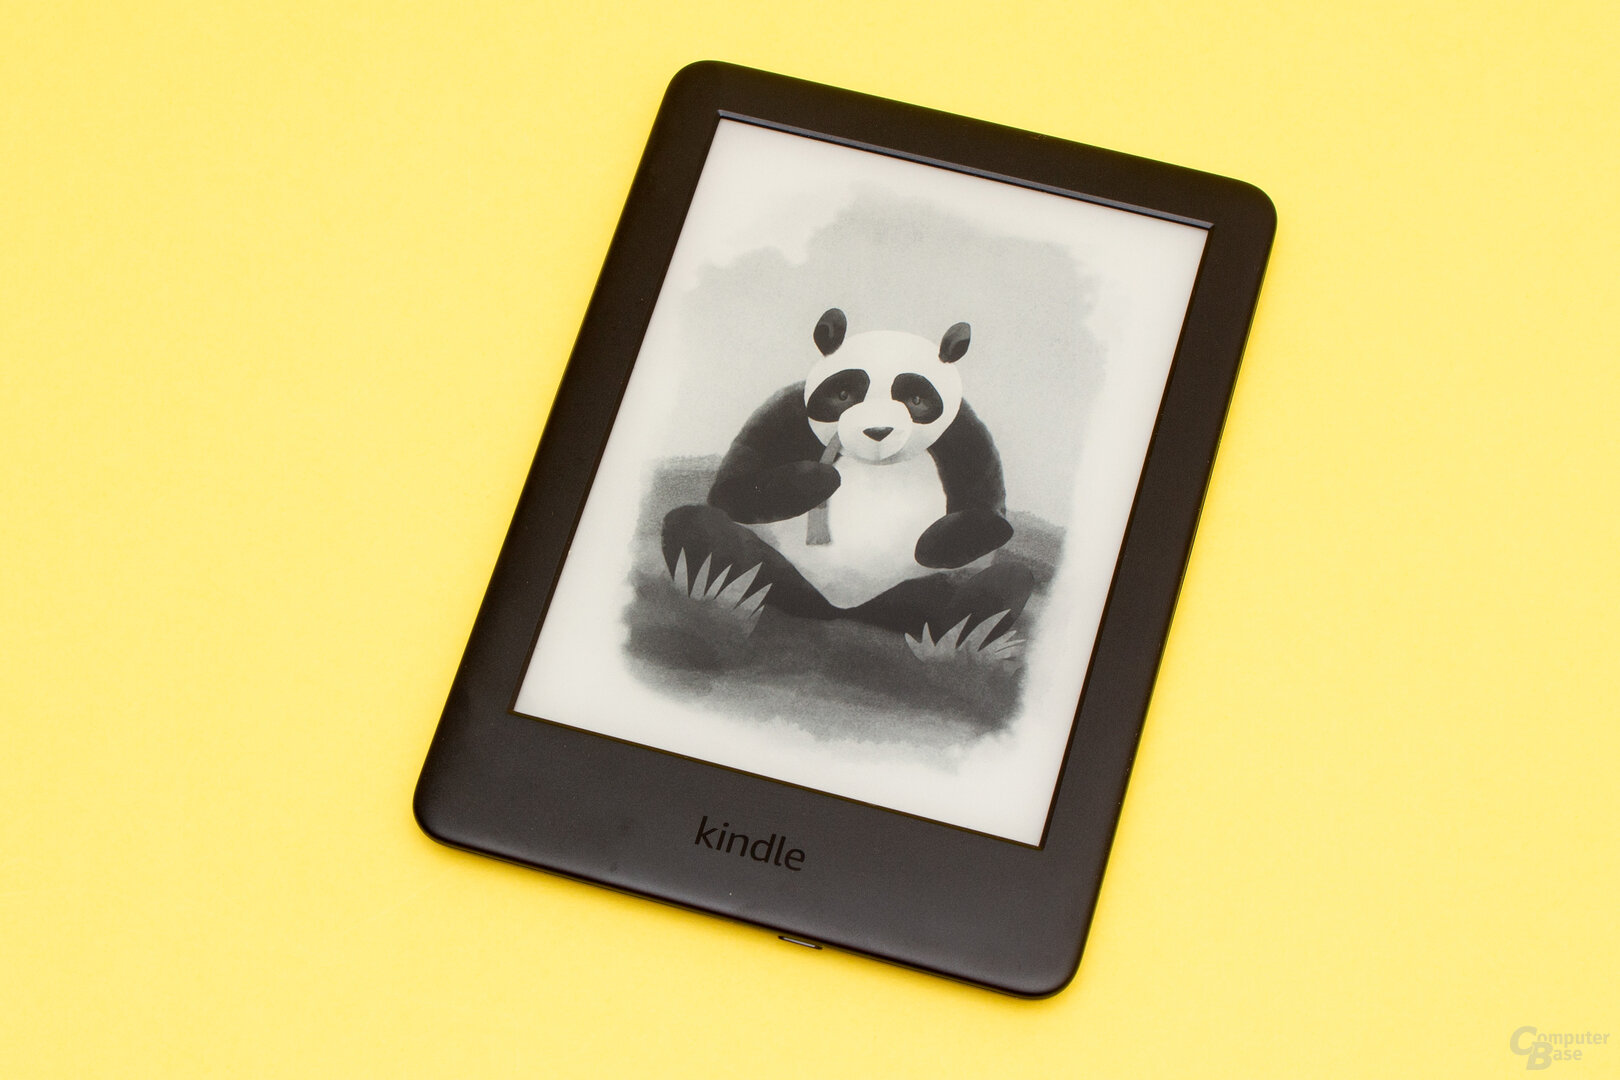 Ohne Hülle auch ein normaler Kindle 2019